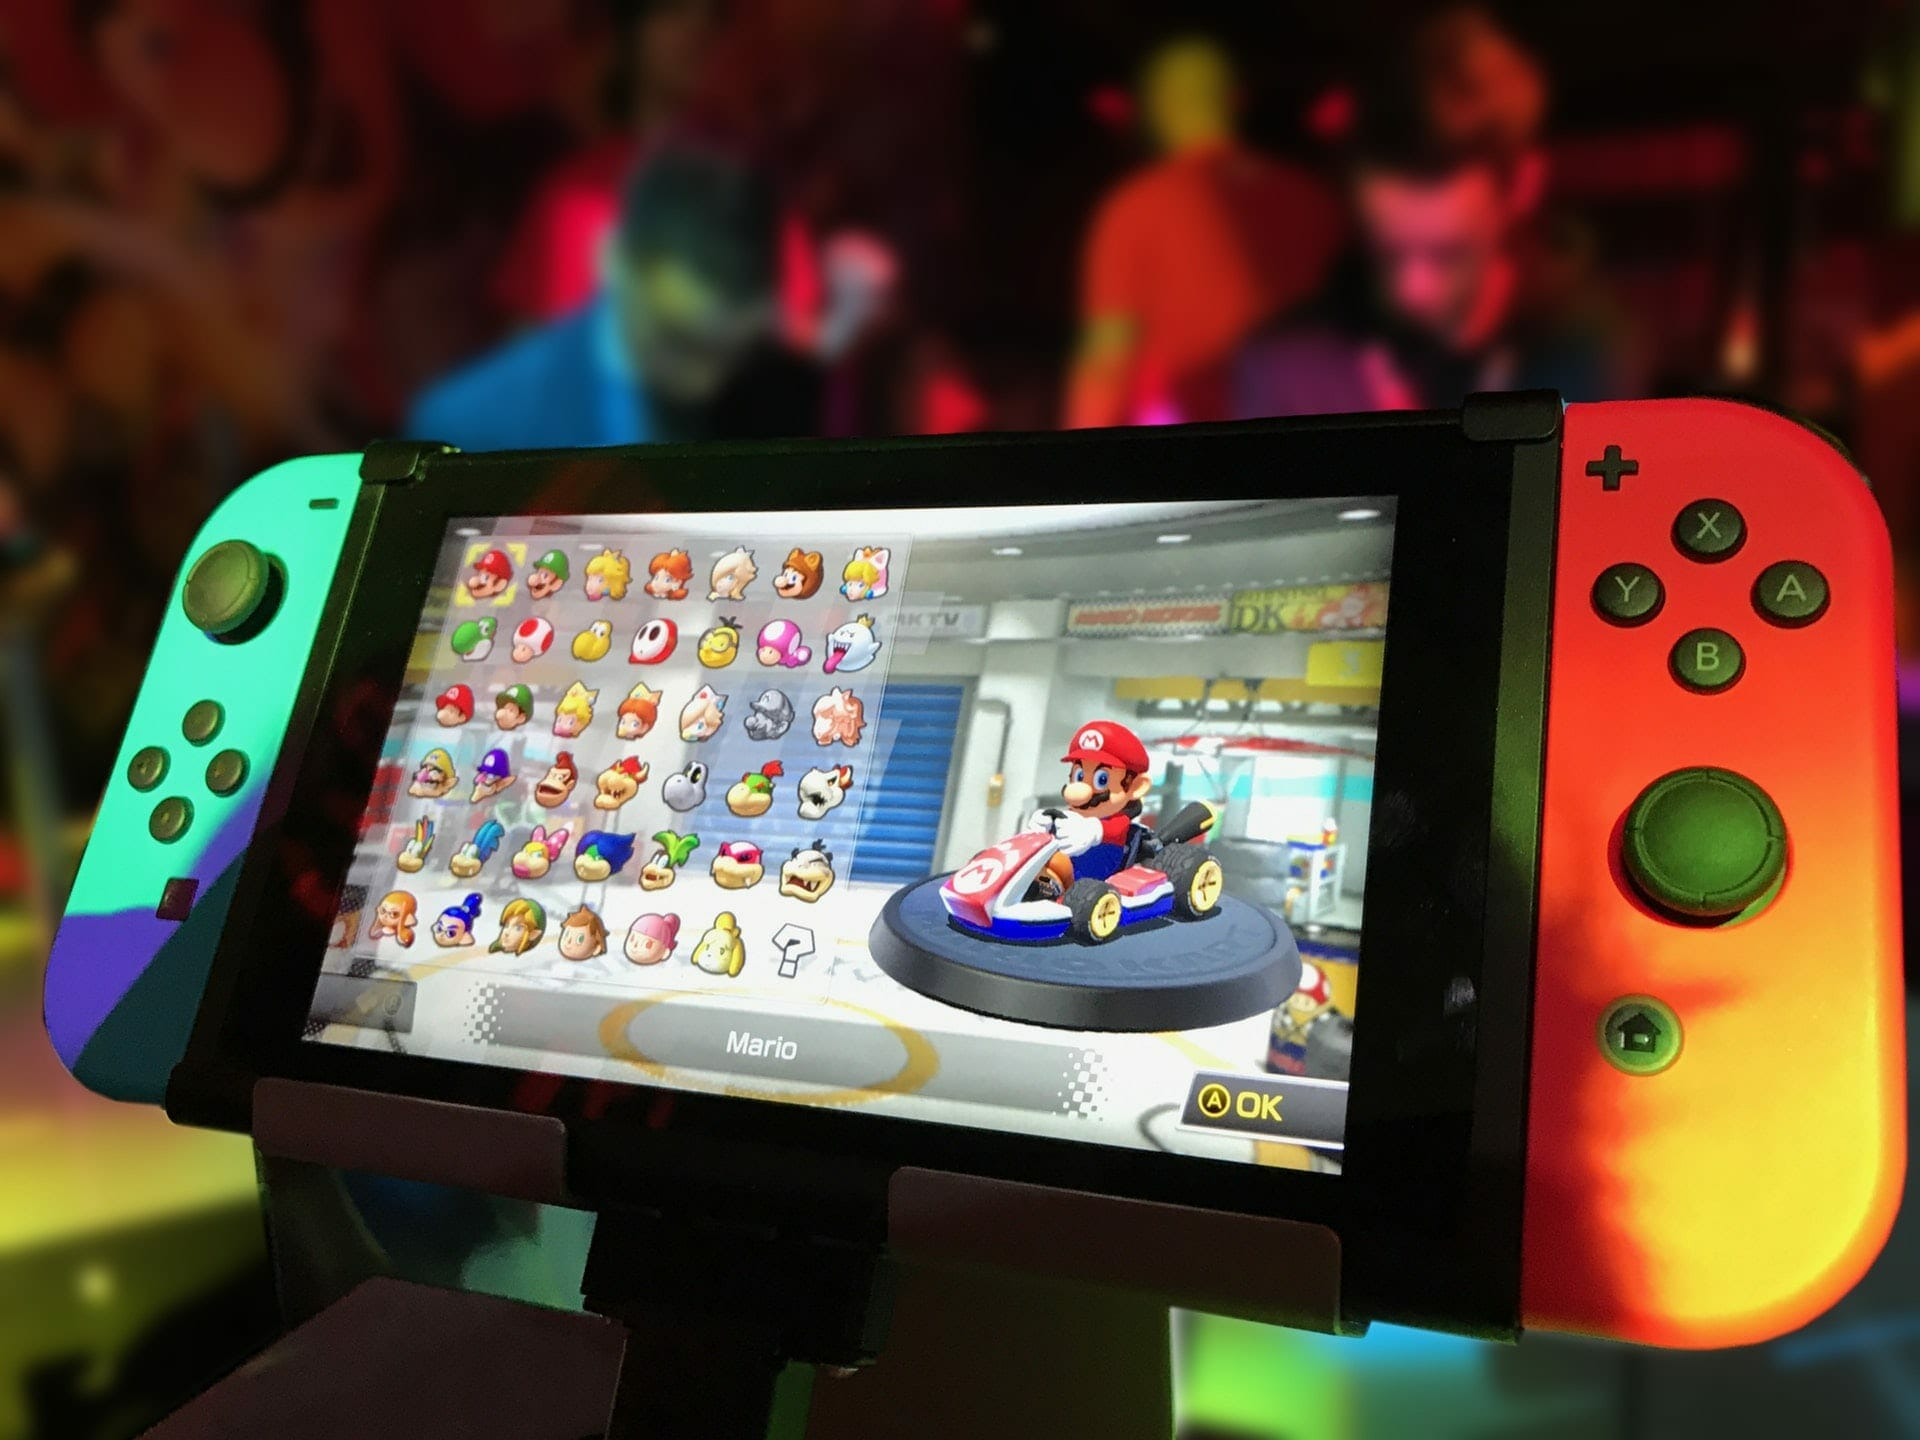 Nintendo Switch 5.0 firmware brings new profile icons and additional parental controls